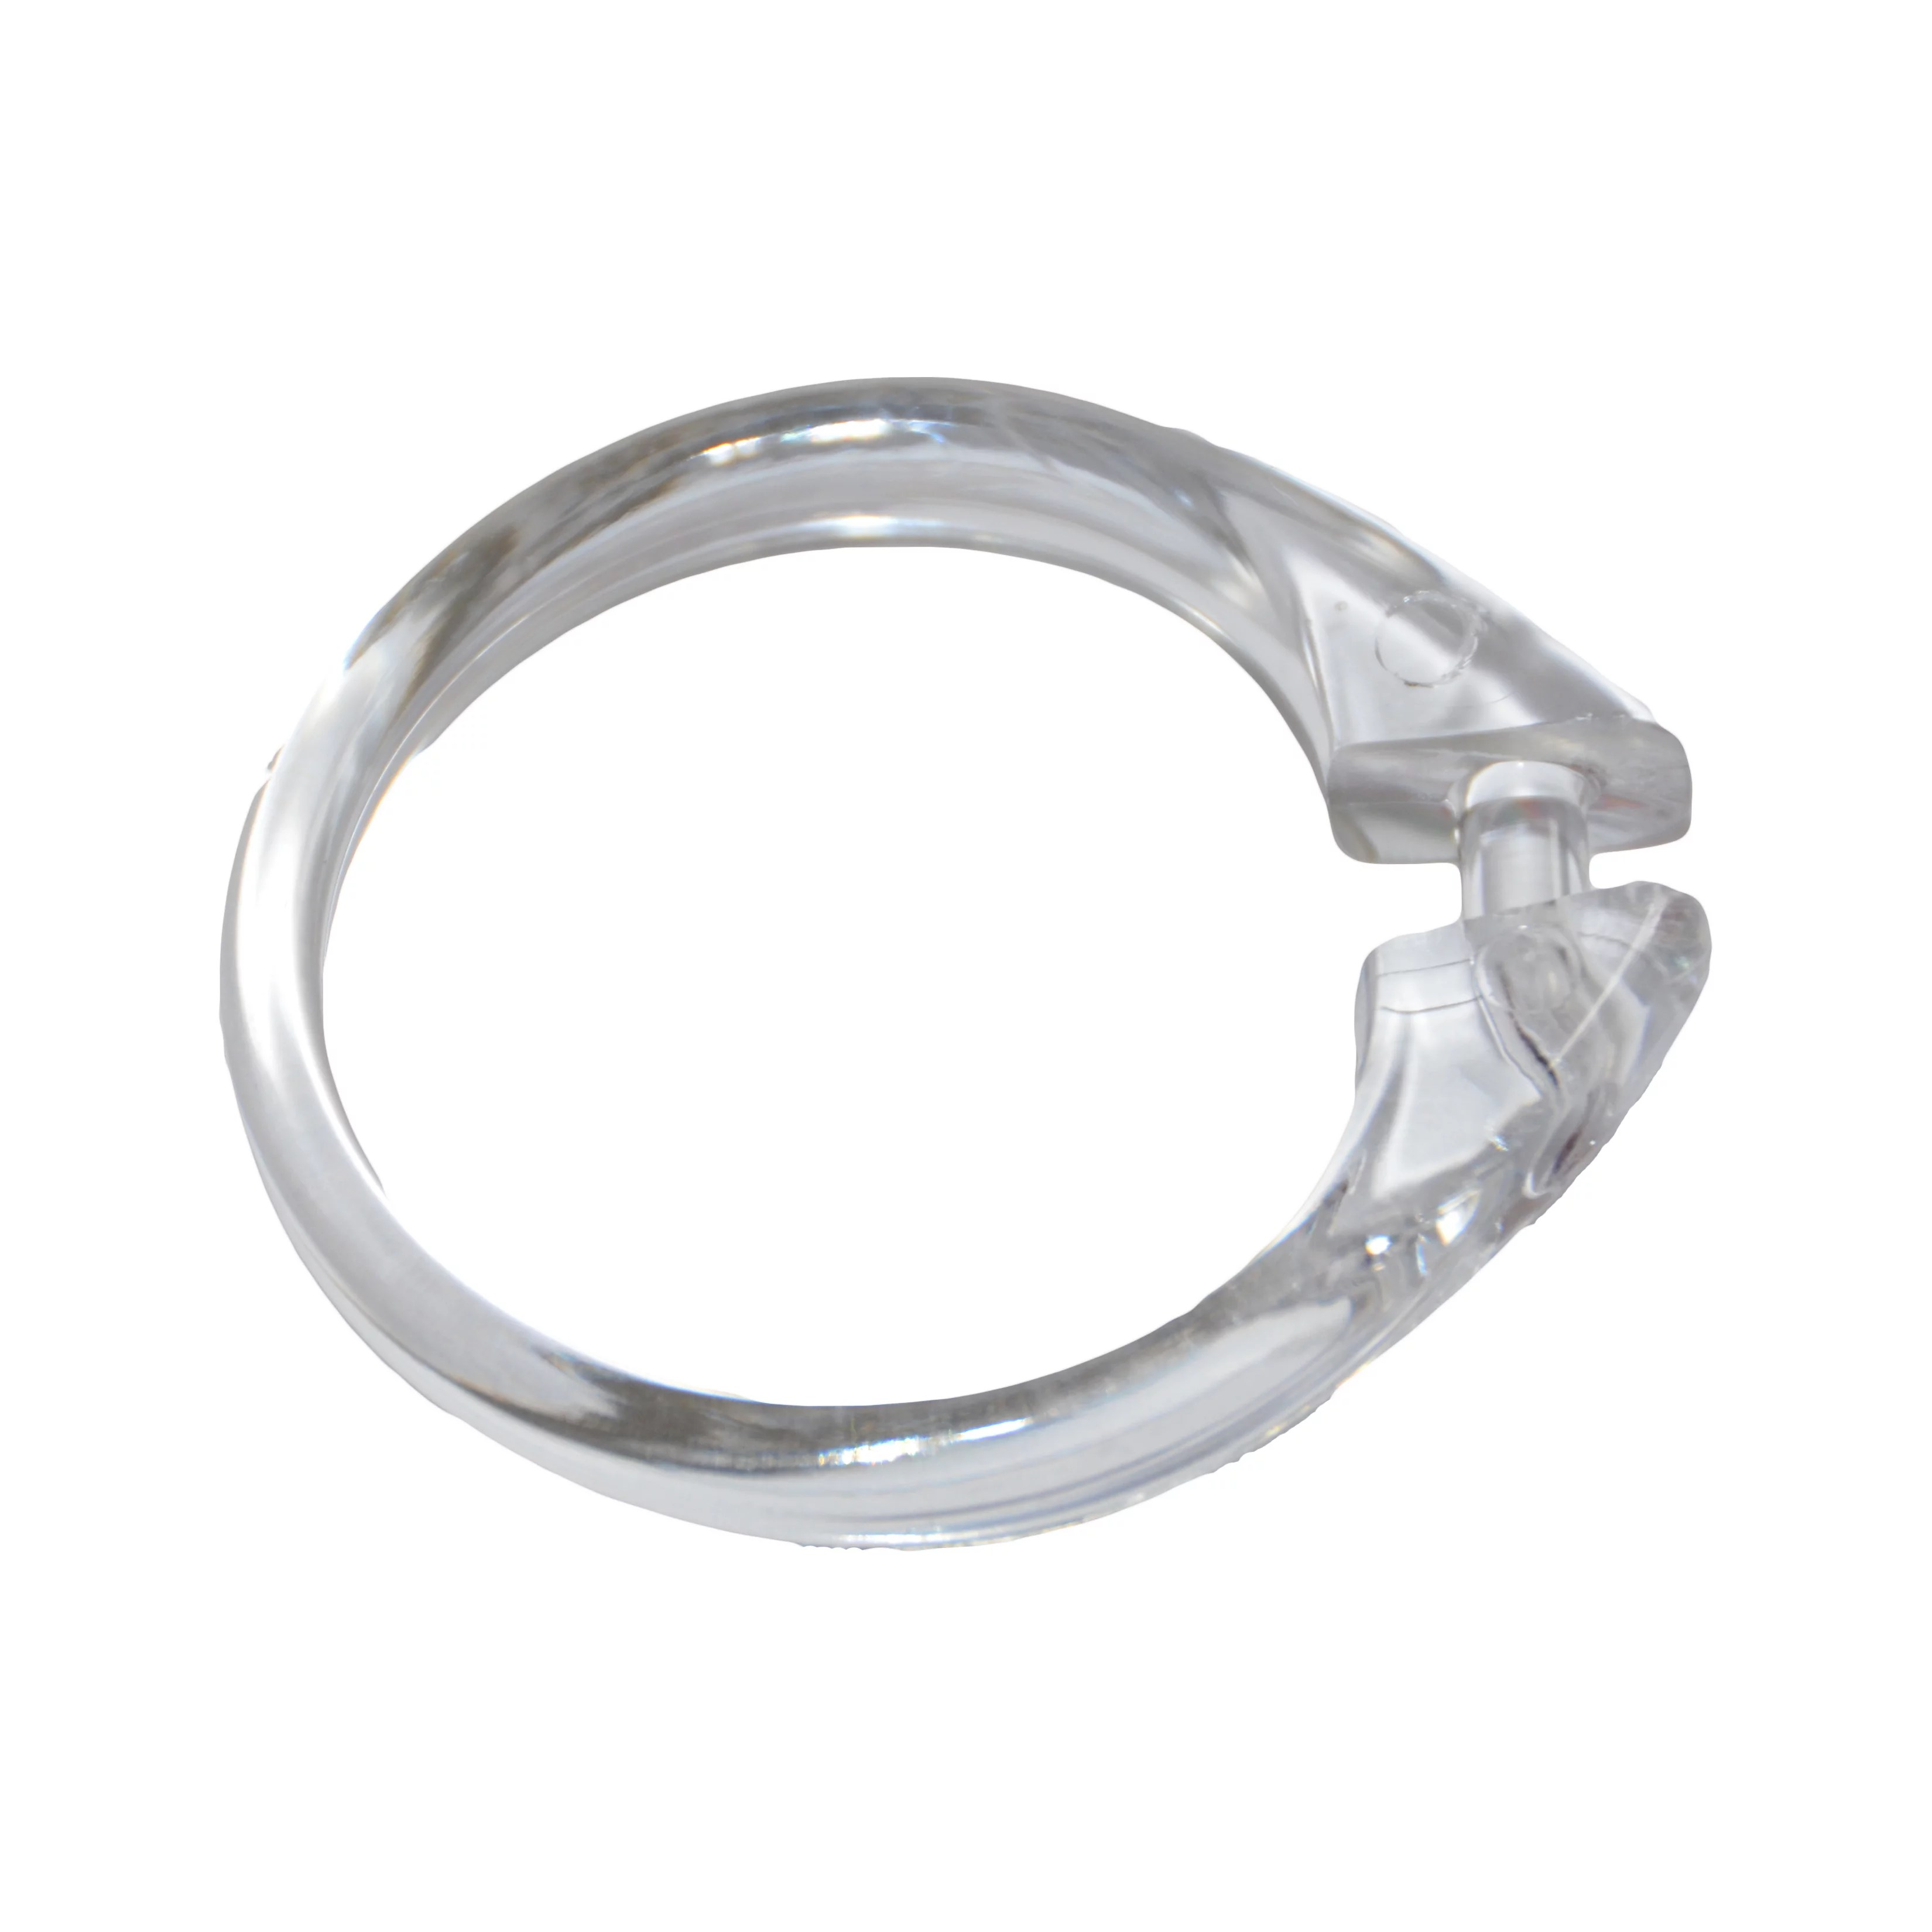 clear set of 12 easy to use plastic snap on shower curtain rings size 2 diameter walmart com